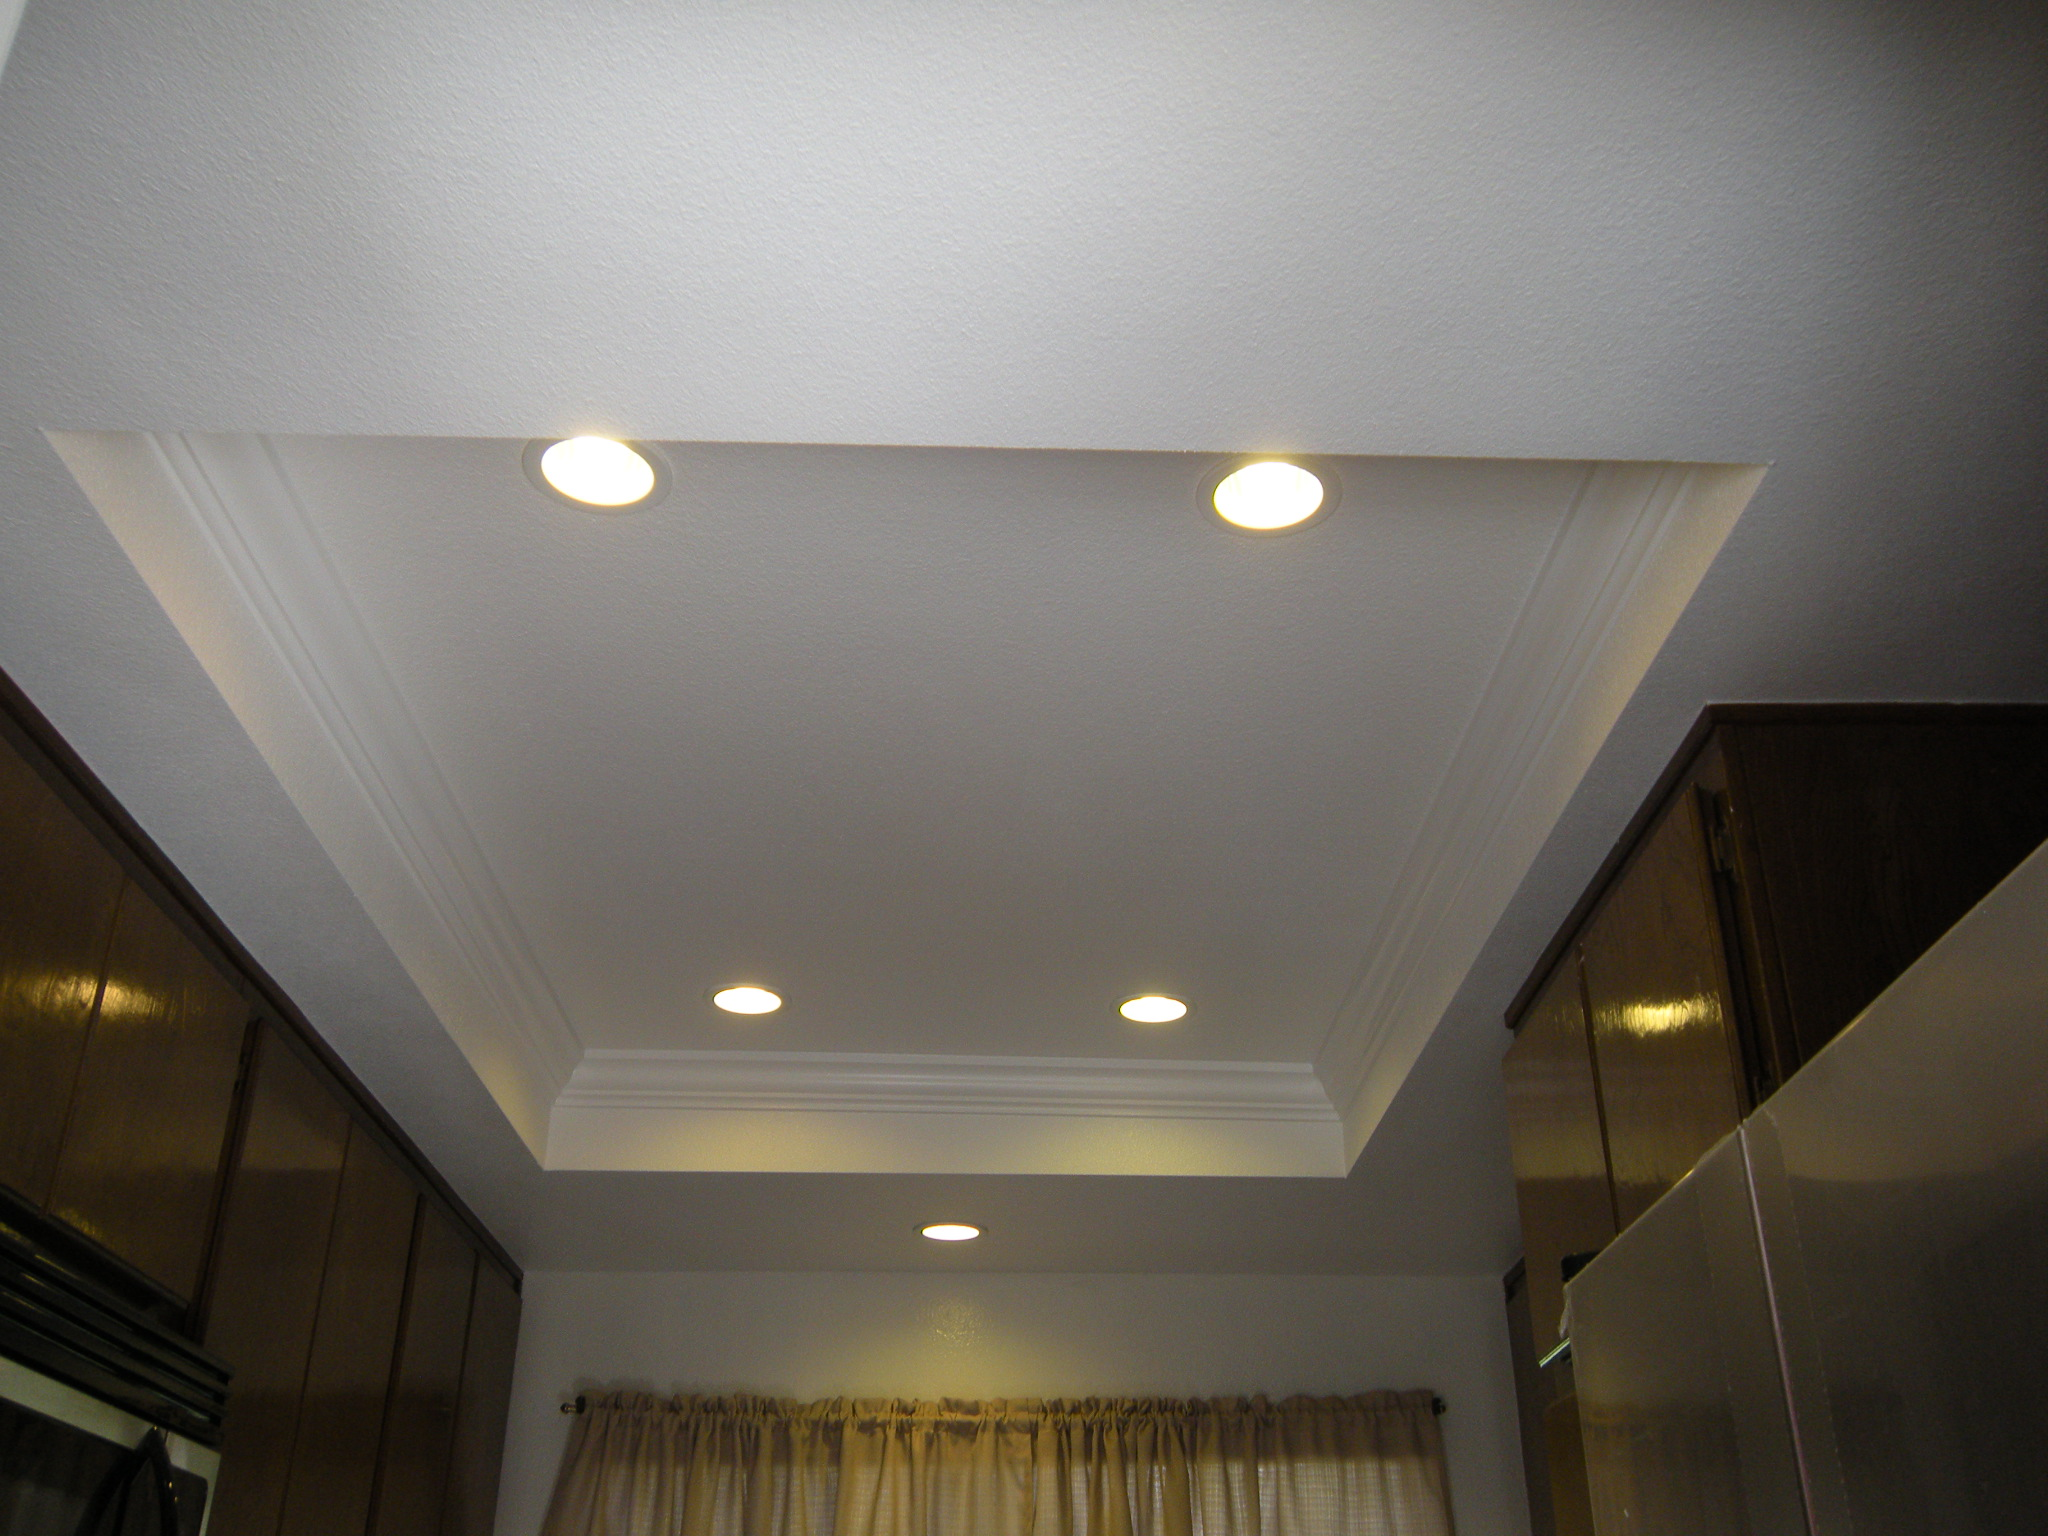 10 tips to buy sunken ceiling lights warisan lighting 10 tips to buy sunken ceiling lights aloadofball Choice Image